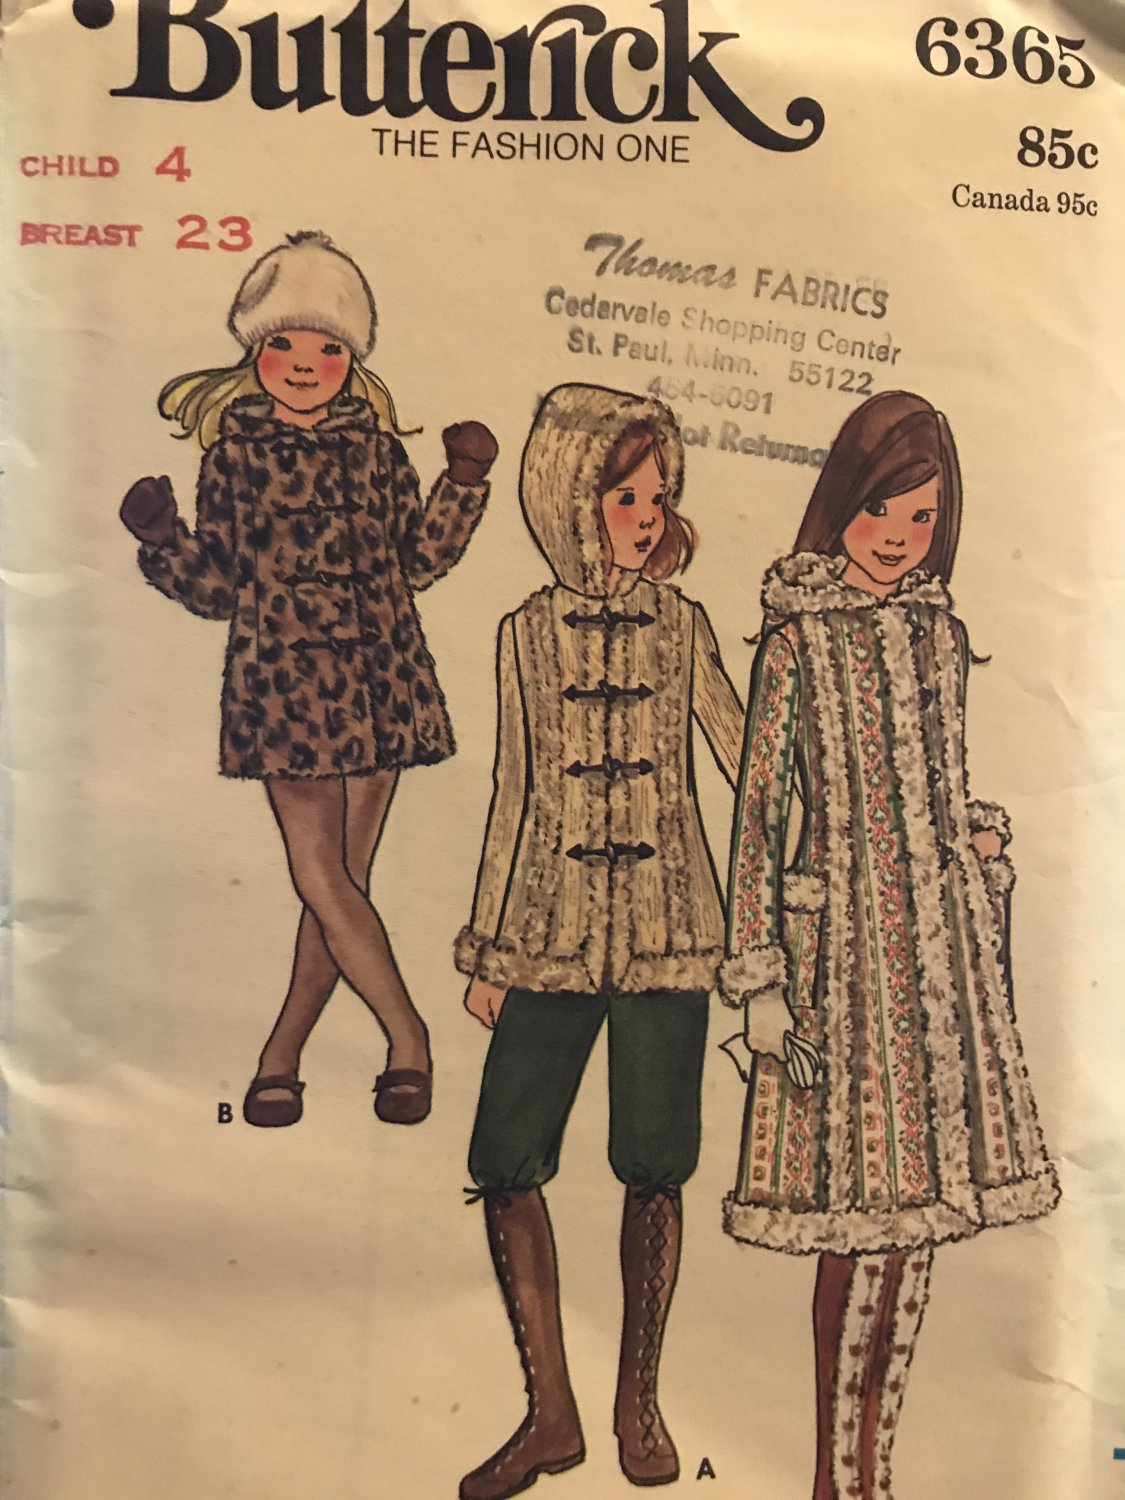 Butterick 6365 Children's Coat Sewing Pattern Size 4